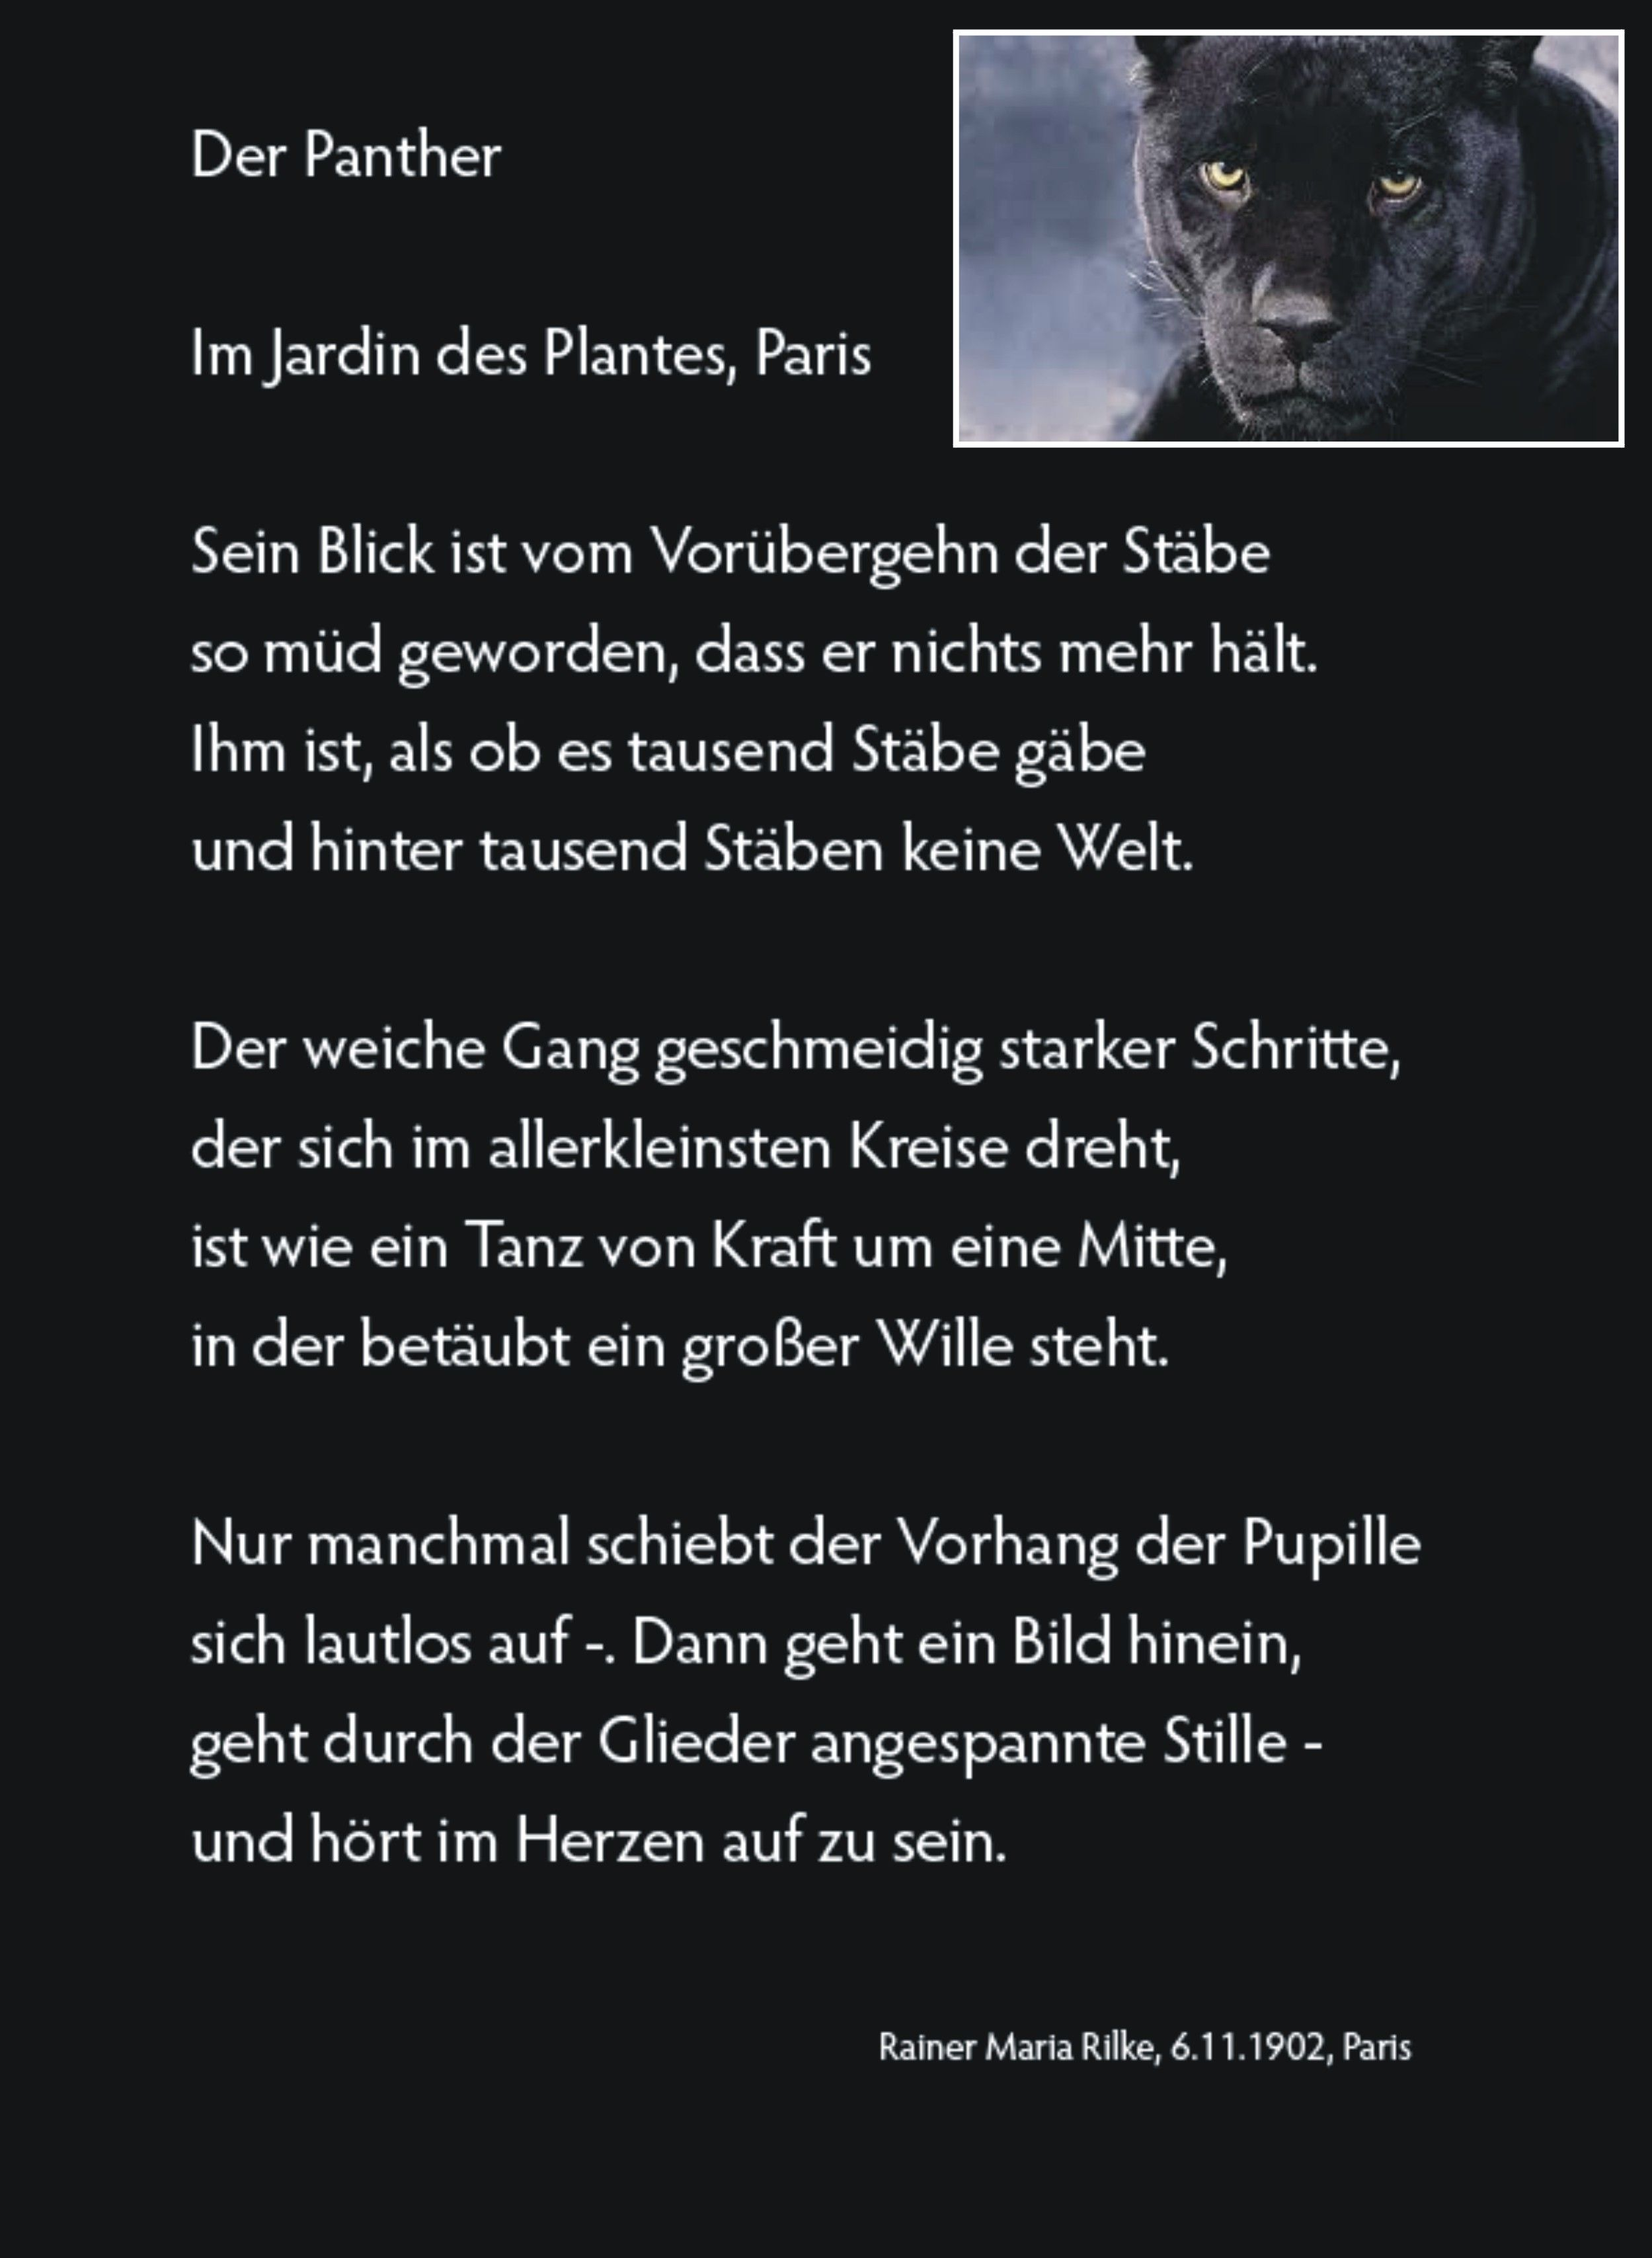 """Rainer Maria Rilke Poetry Quotes Poems Panthers Bohemia Austria Depression Now Thoughts Quotes """""""